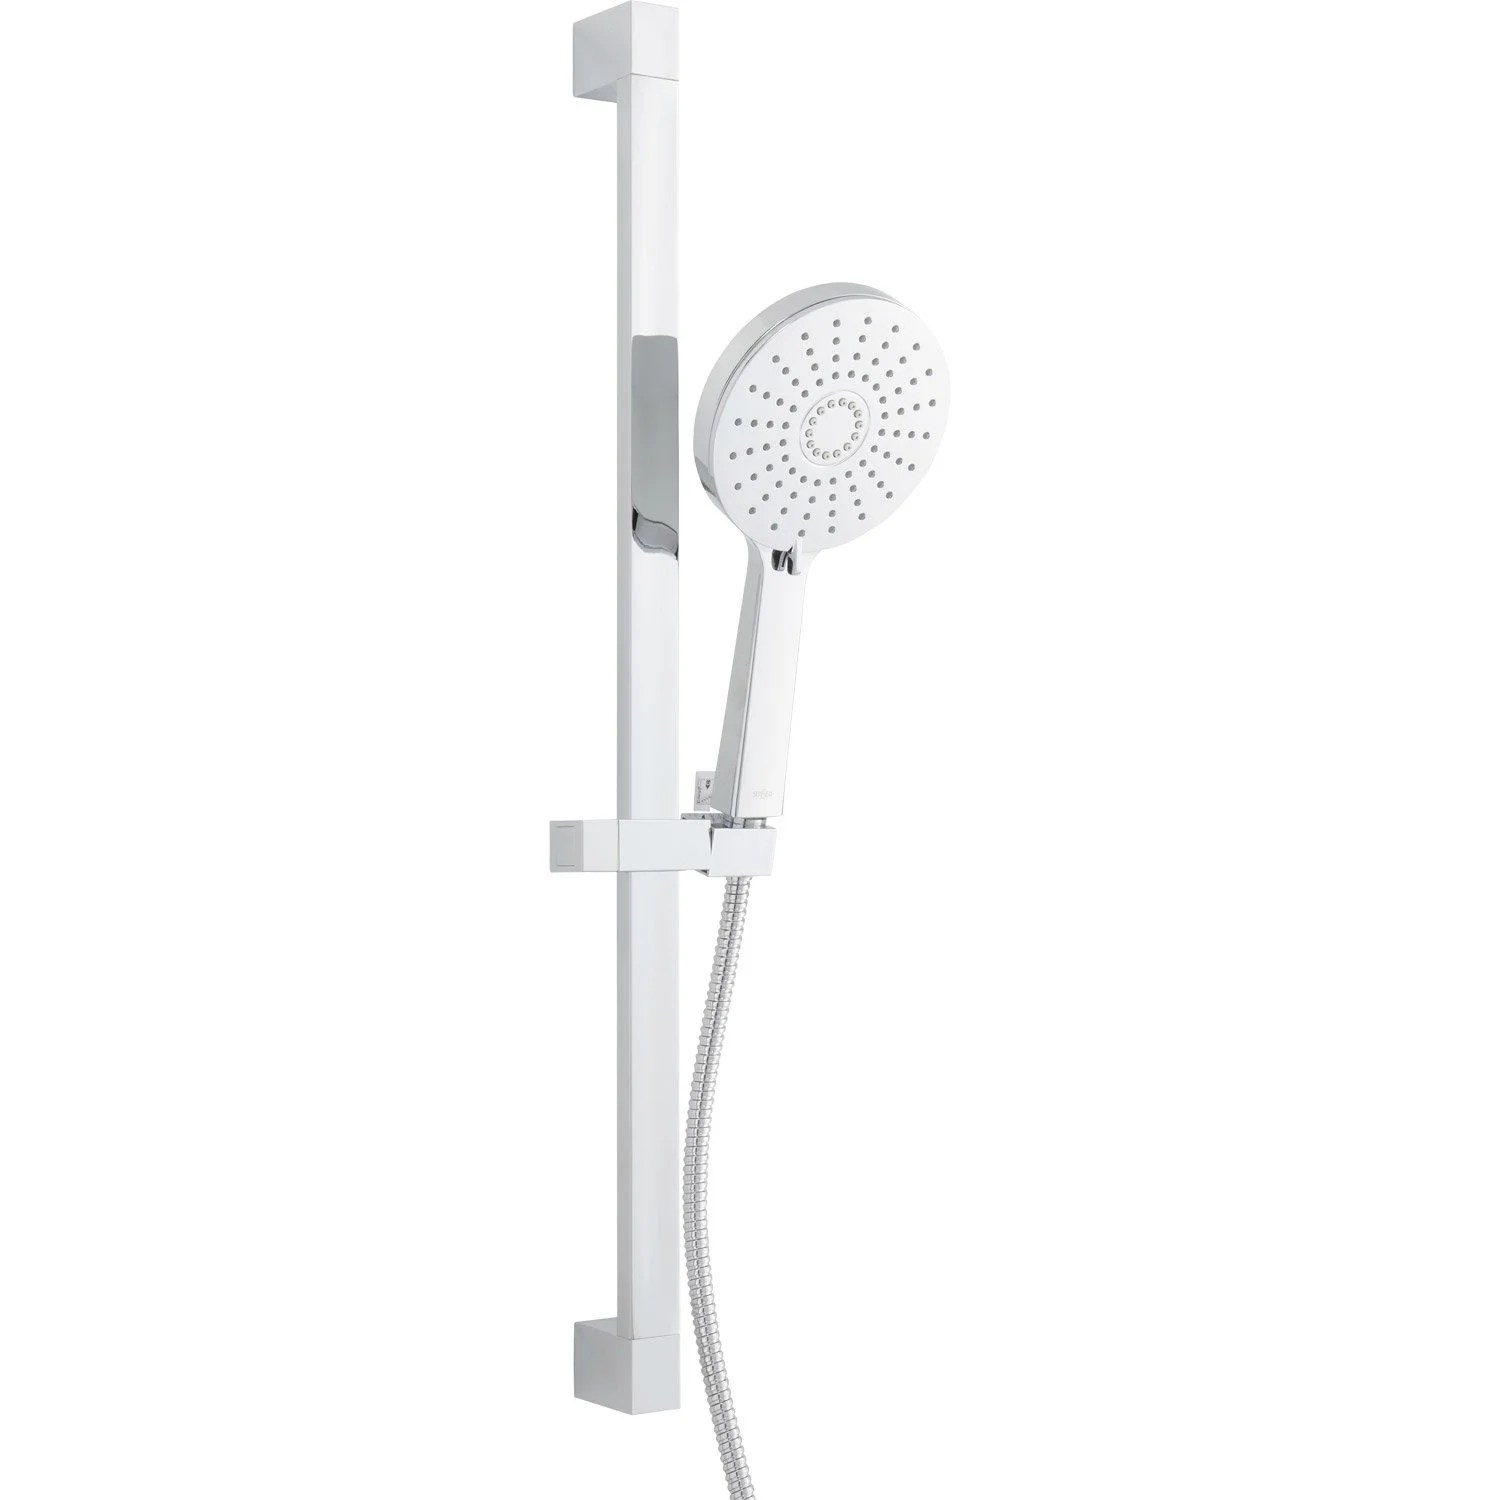 Ensemble Douche Ensemble De Douche 3 Jets Sensea City Chromé Leroy Merlin